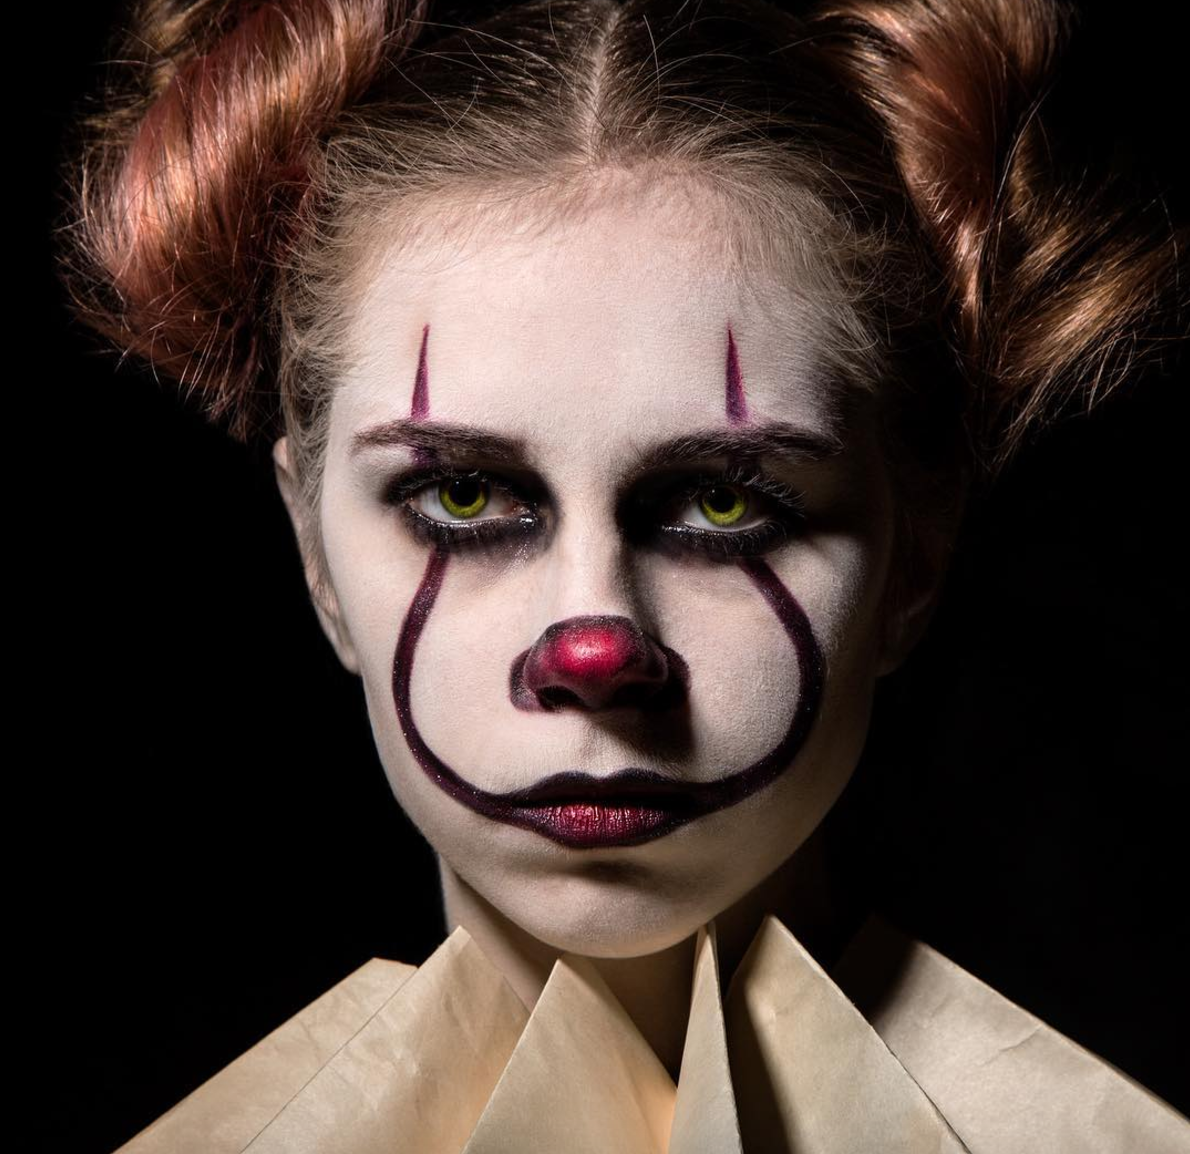 85 of the most jawdropping halloween makeup ideas on instagram